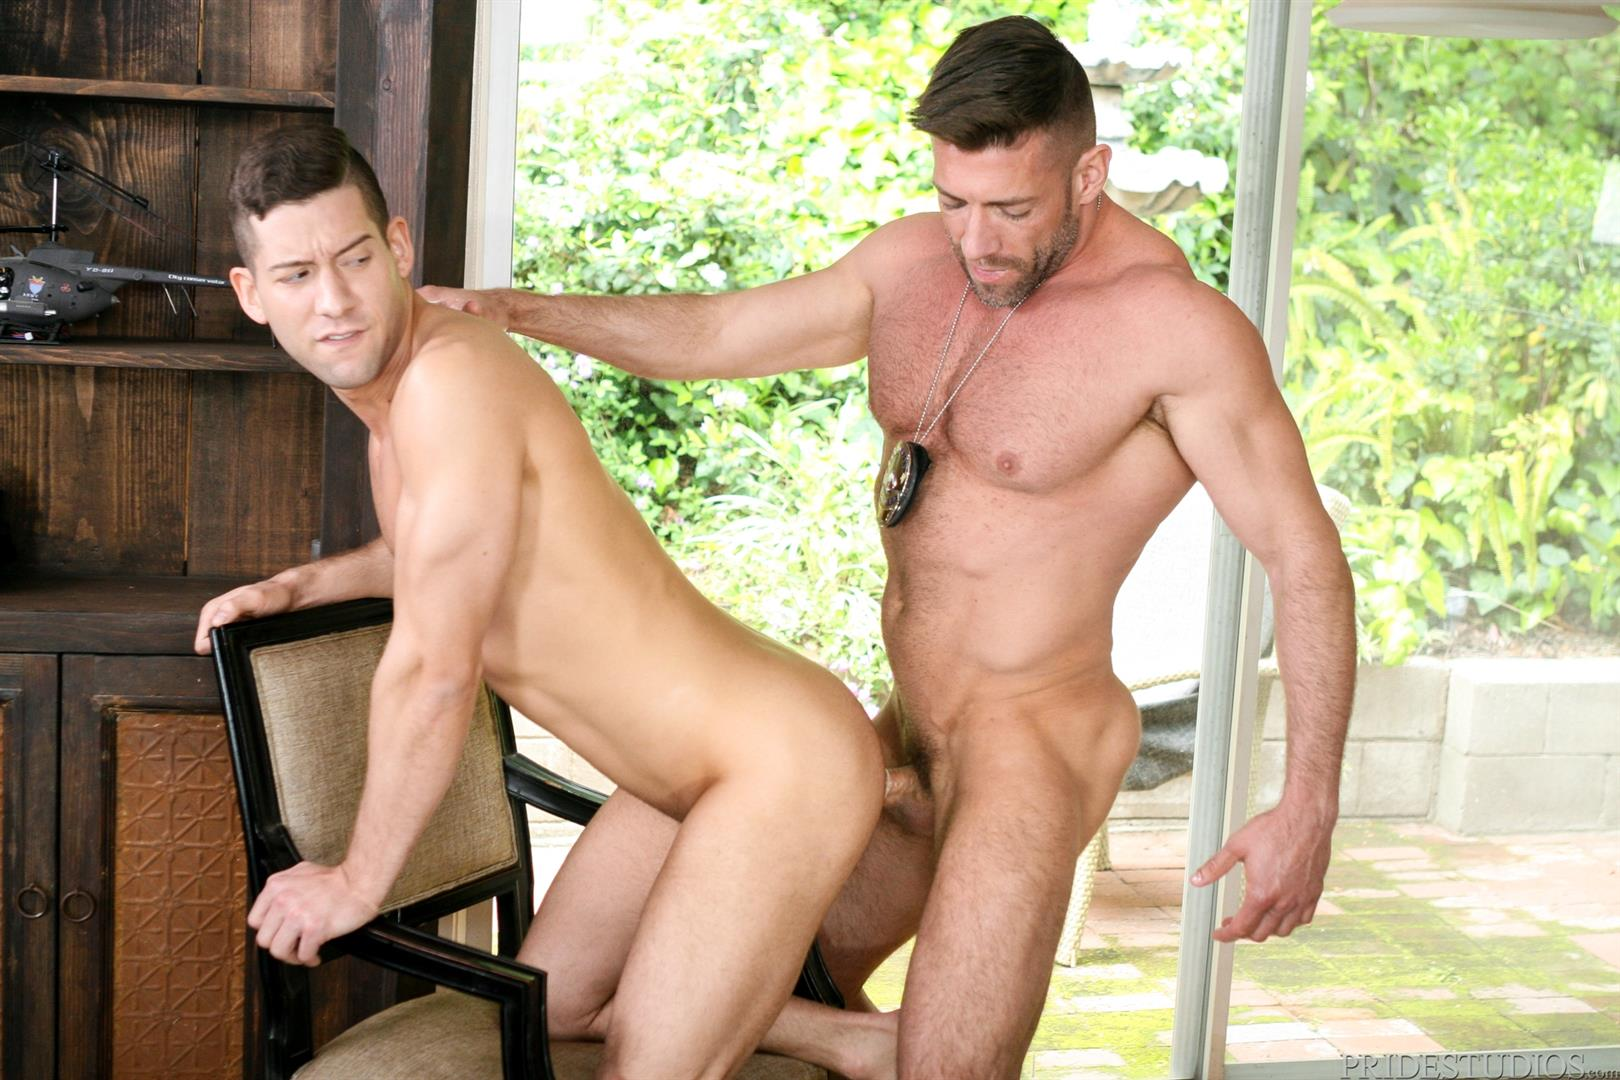 Dylan-Lucas-Kyle-Kash-and-Bruce-Beckham-Hairy-Muscle-Daddy-Fucking-Amateur-Gay-Porn-11 Hairy Muscle Daddy Bruce Beckham Fucks Kyle Kash